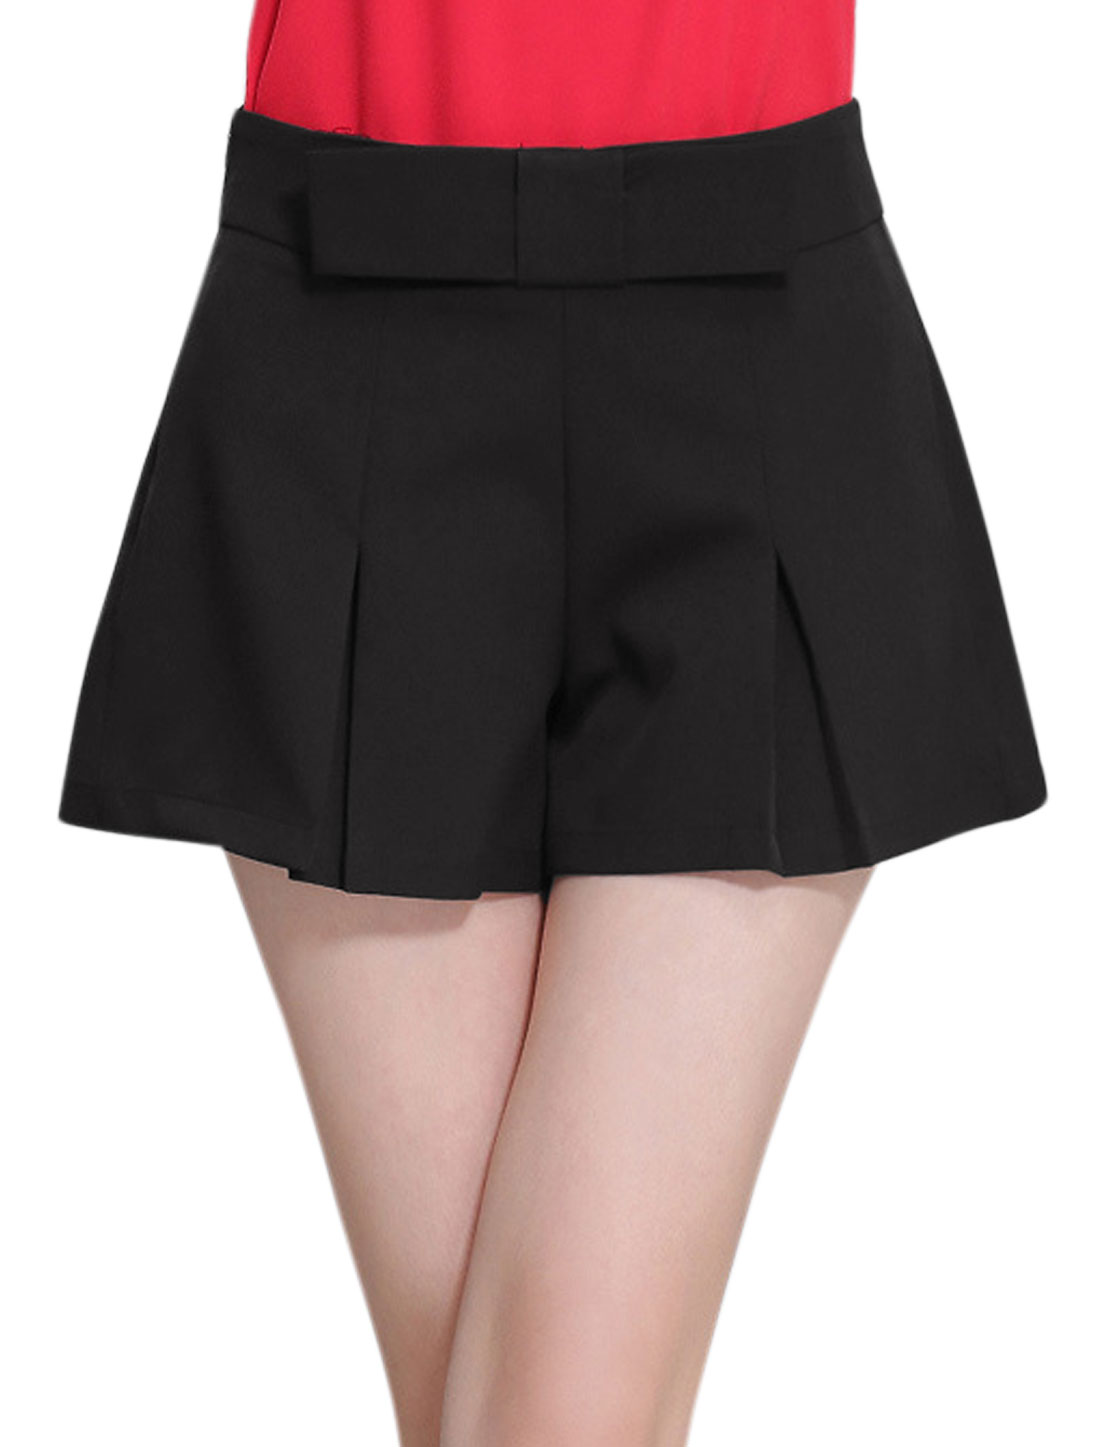 Lady Zip Closure Pleated Detail Bowknot Decor Casual Shorts Black L